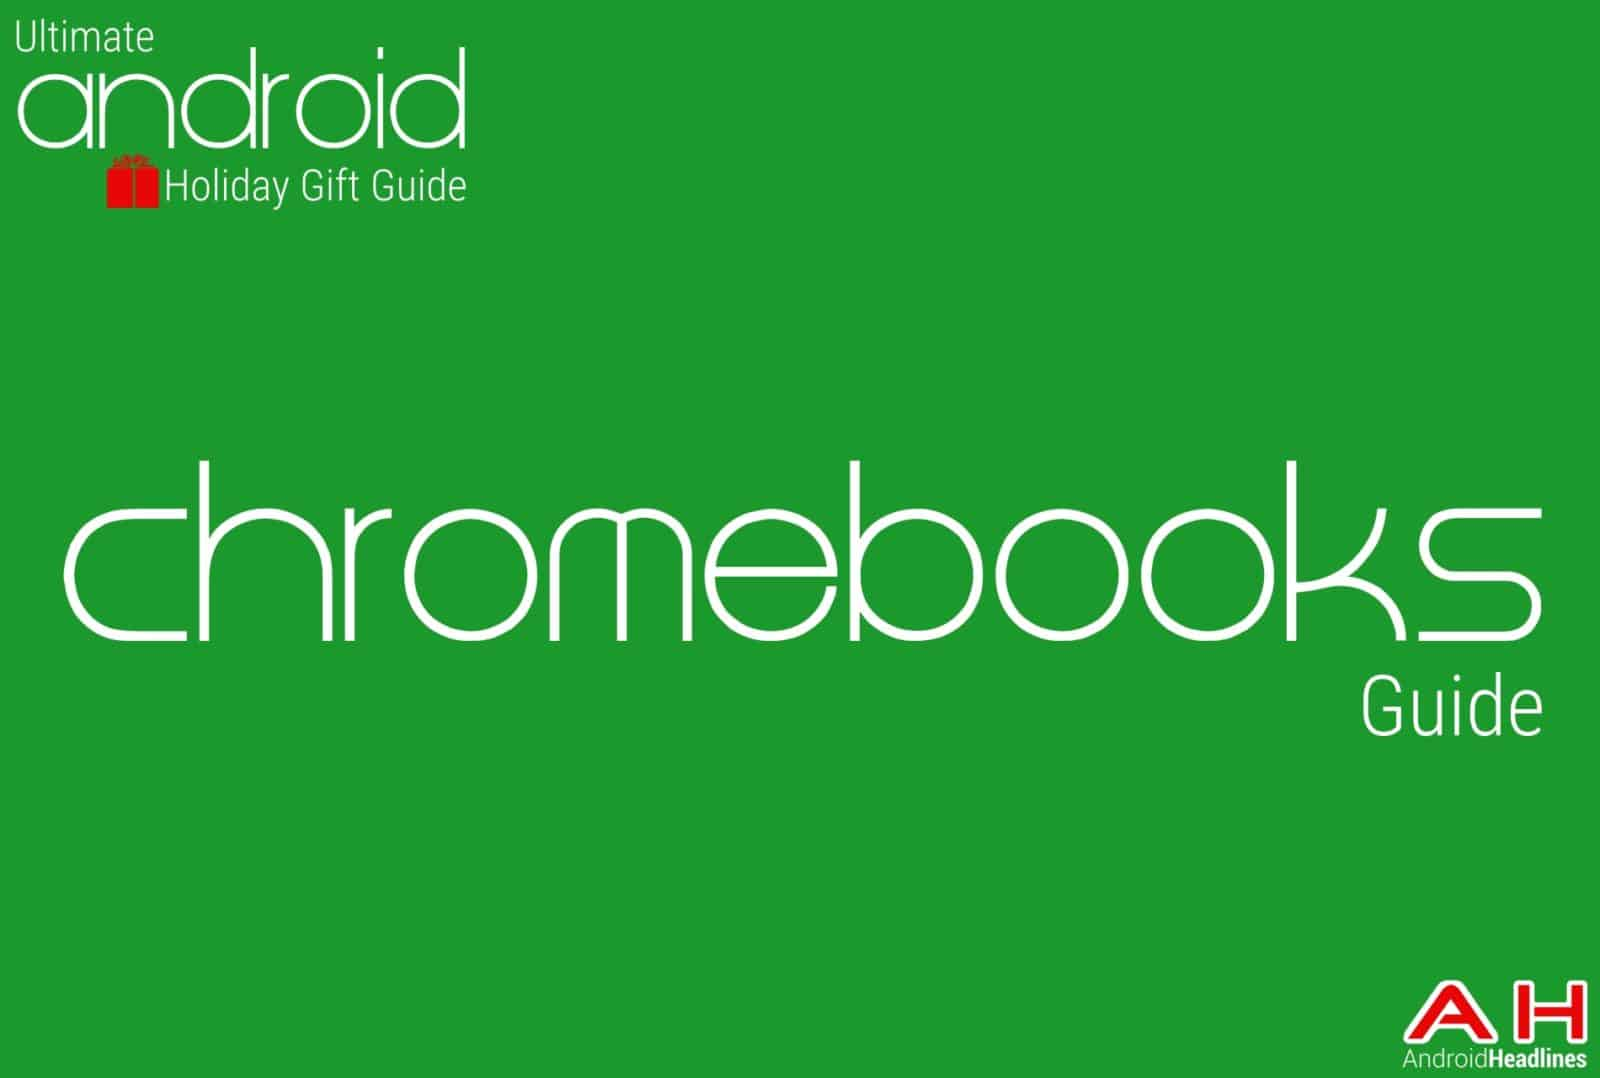 Best chromebooks Guide - Android Holiday Gift Guide Top 10